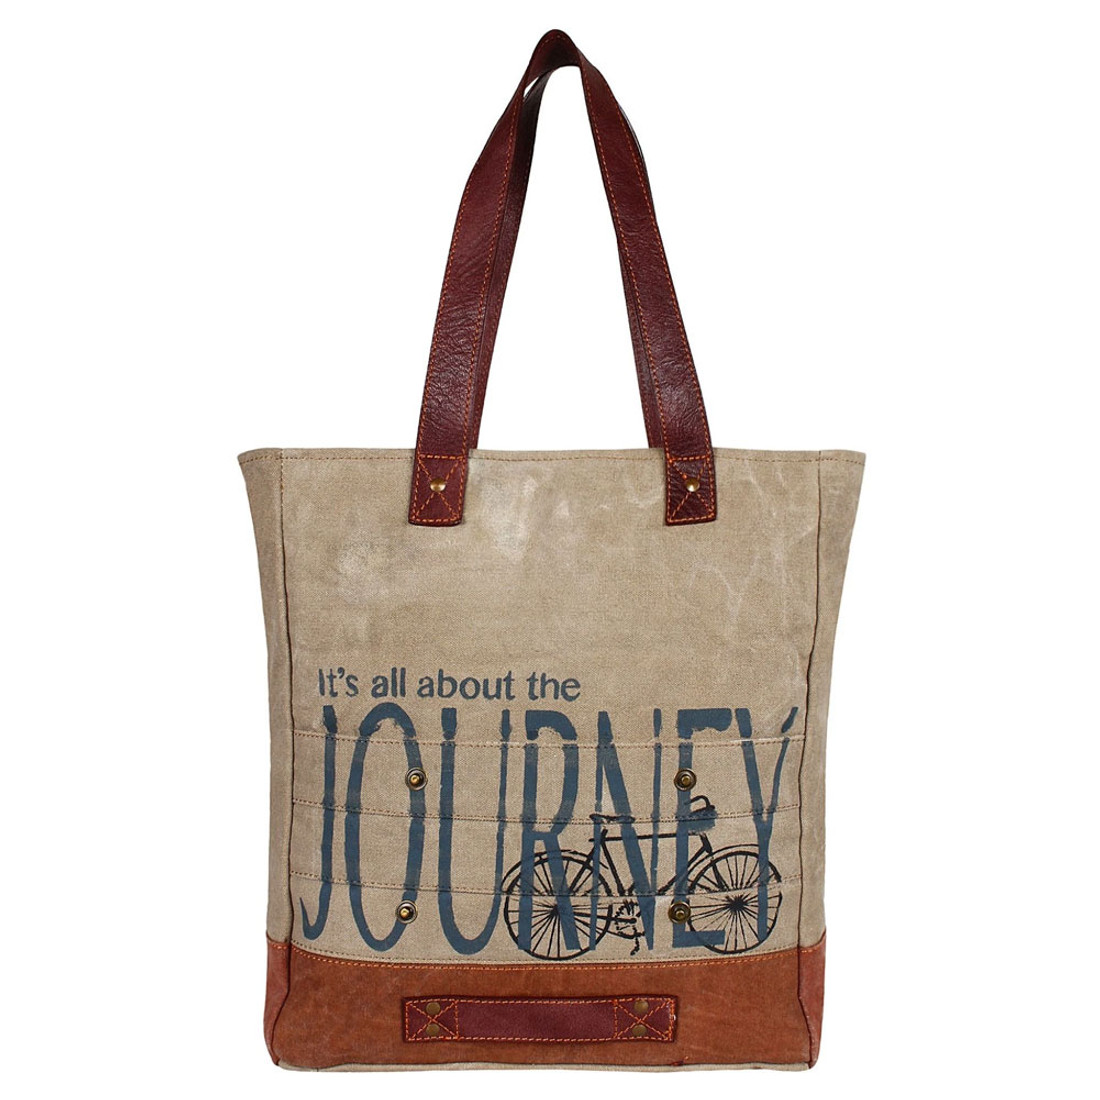 All About The Journey Up-Cycled Canvas Tote Bag